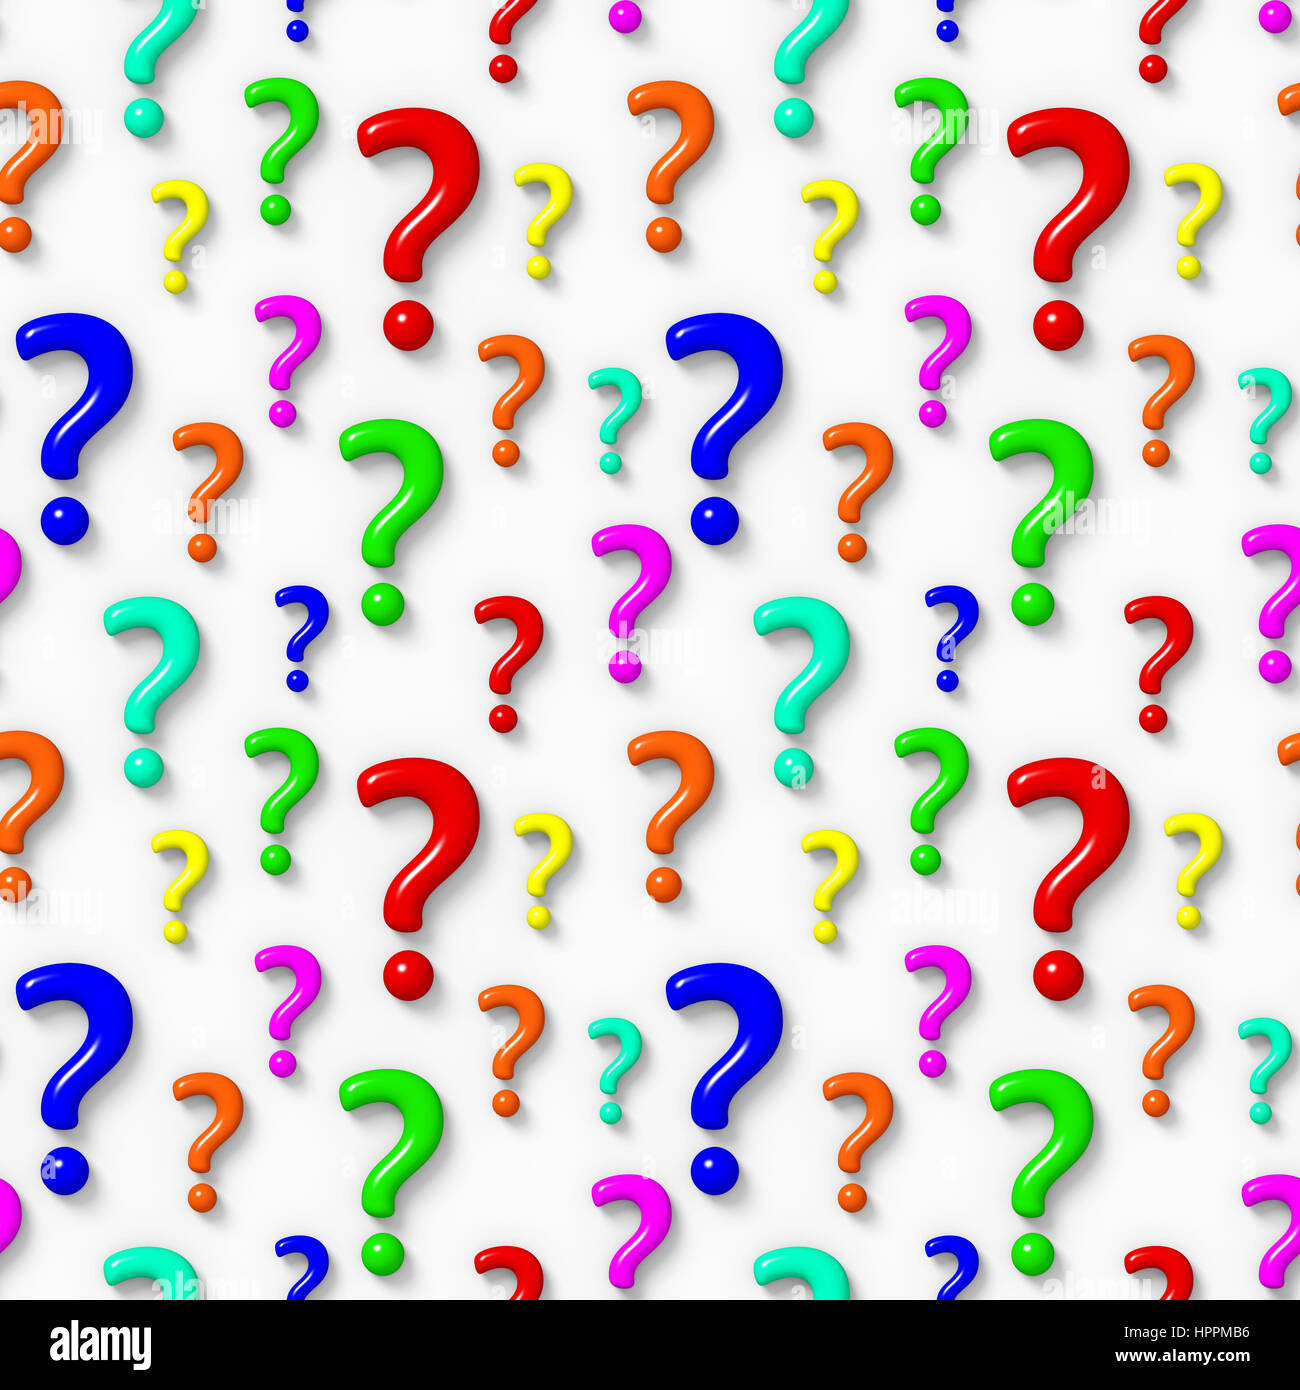 3d Dashboard Seamless 3d Background With Colourful Question Marks Stock